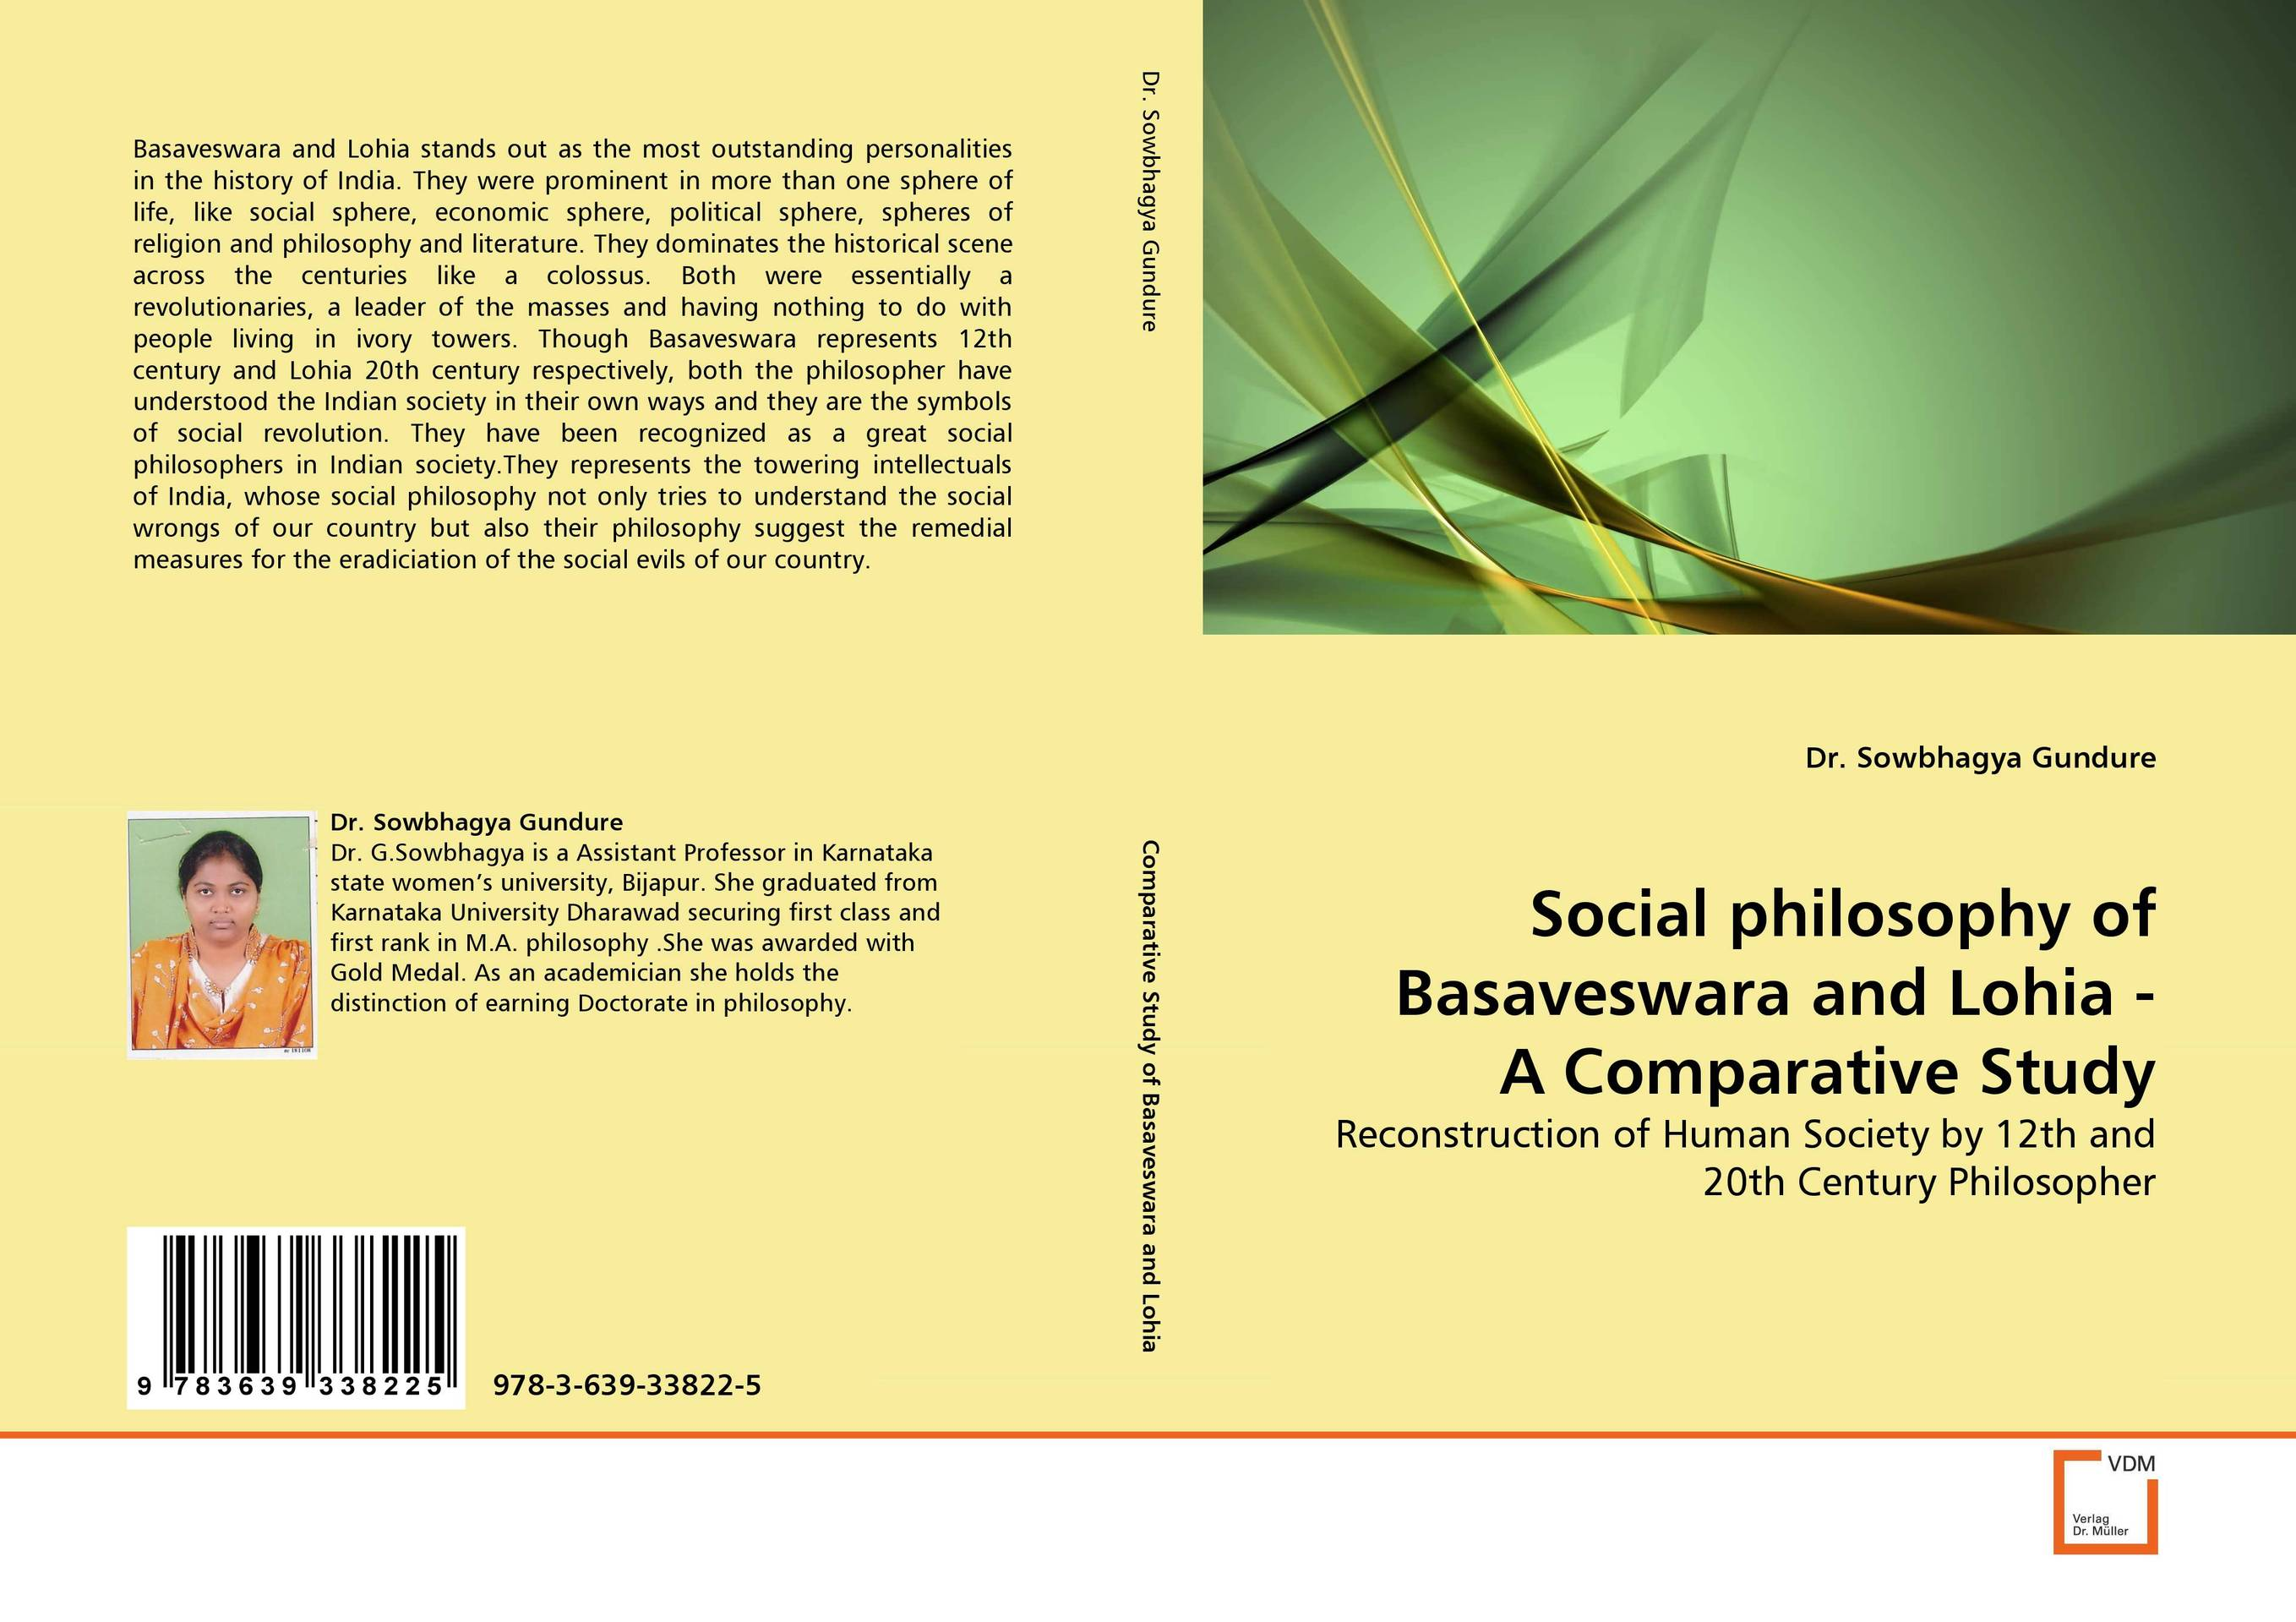 Social philosophy of Basaveswara and Lohia - A Comparative Study social housing in glasgow volume 2